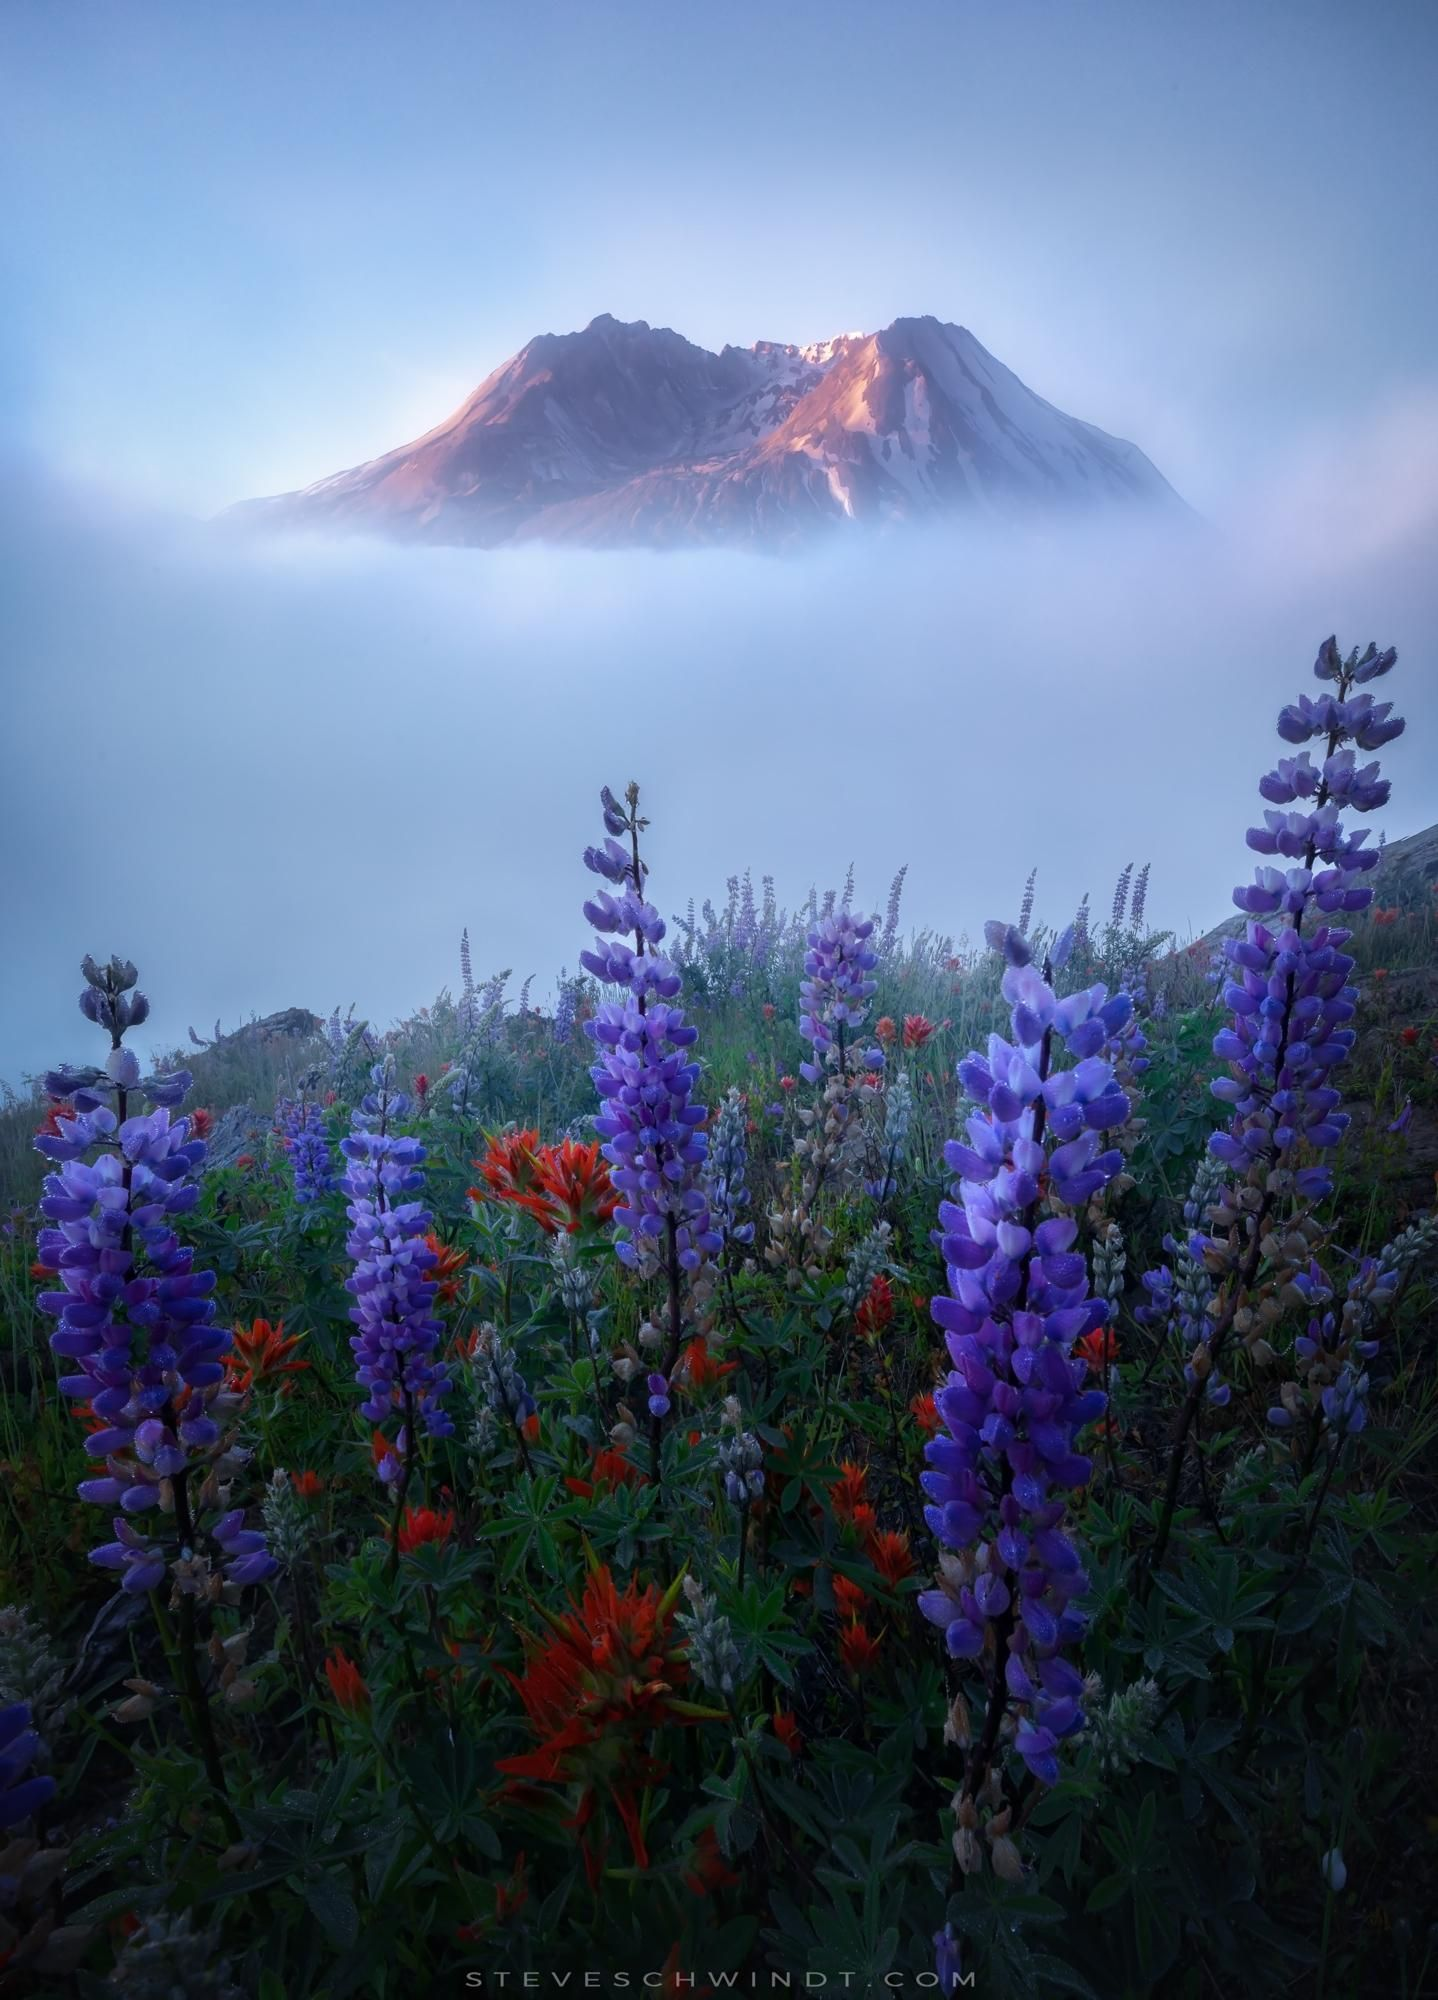 Mount St Helens Peaking Above Beautiful Wildflowers And Thick Fog